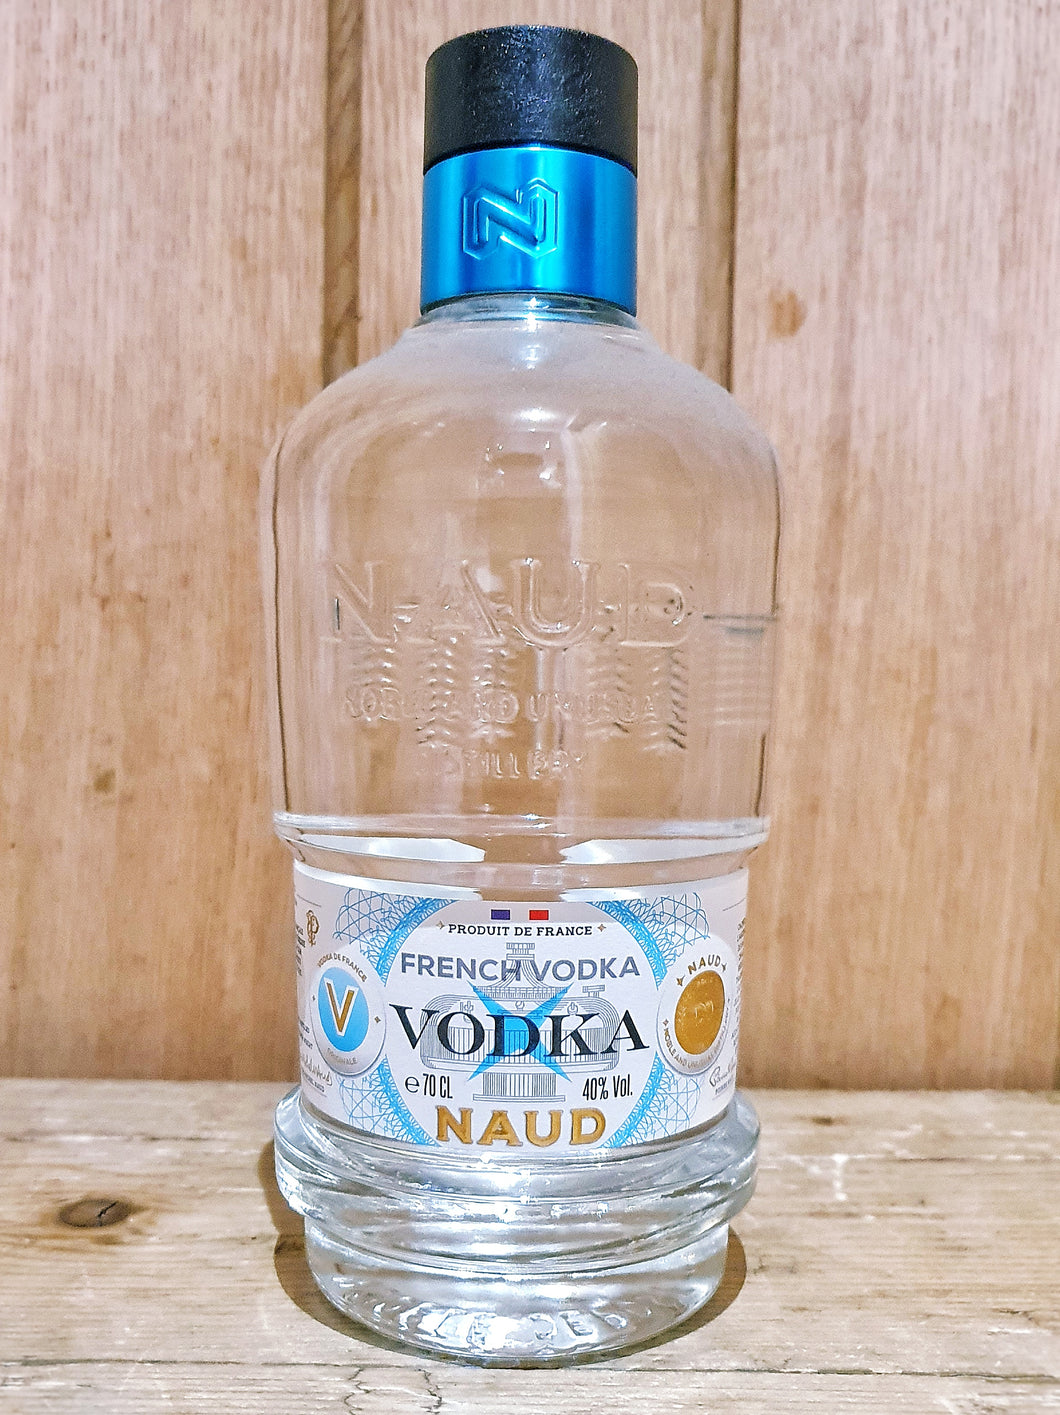 NAUD Vodka